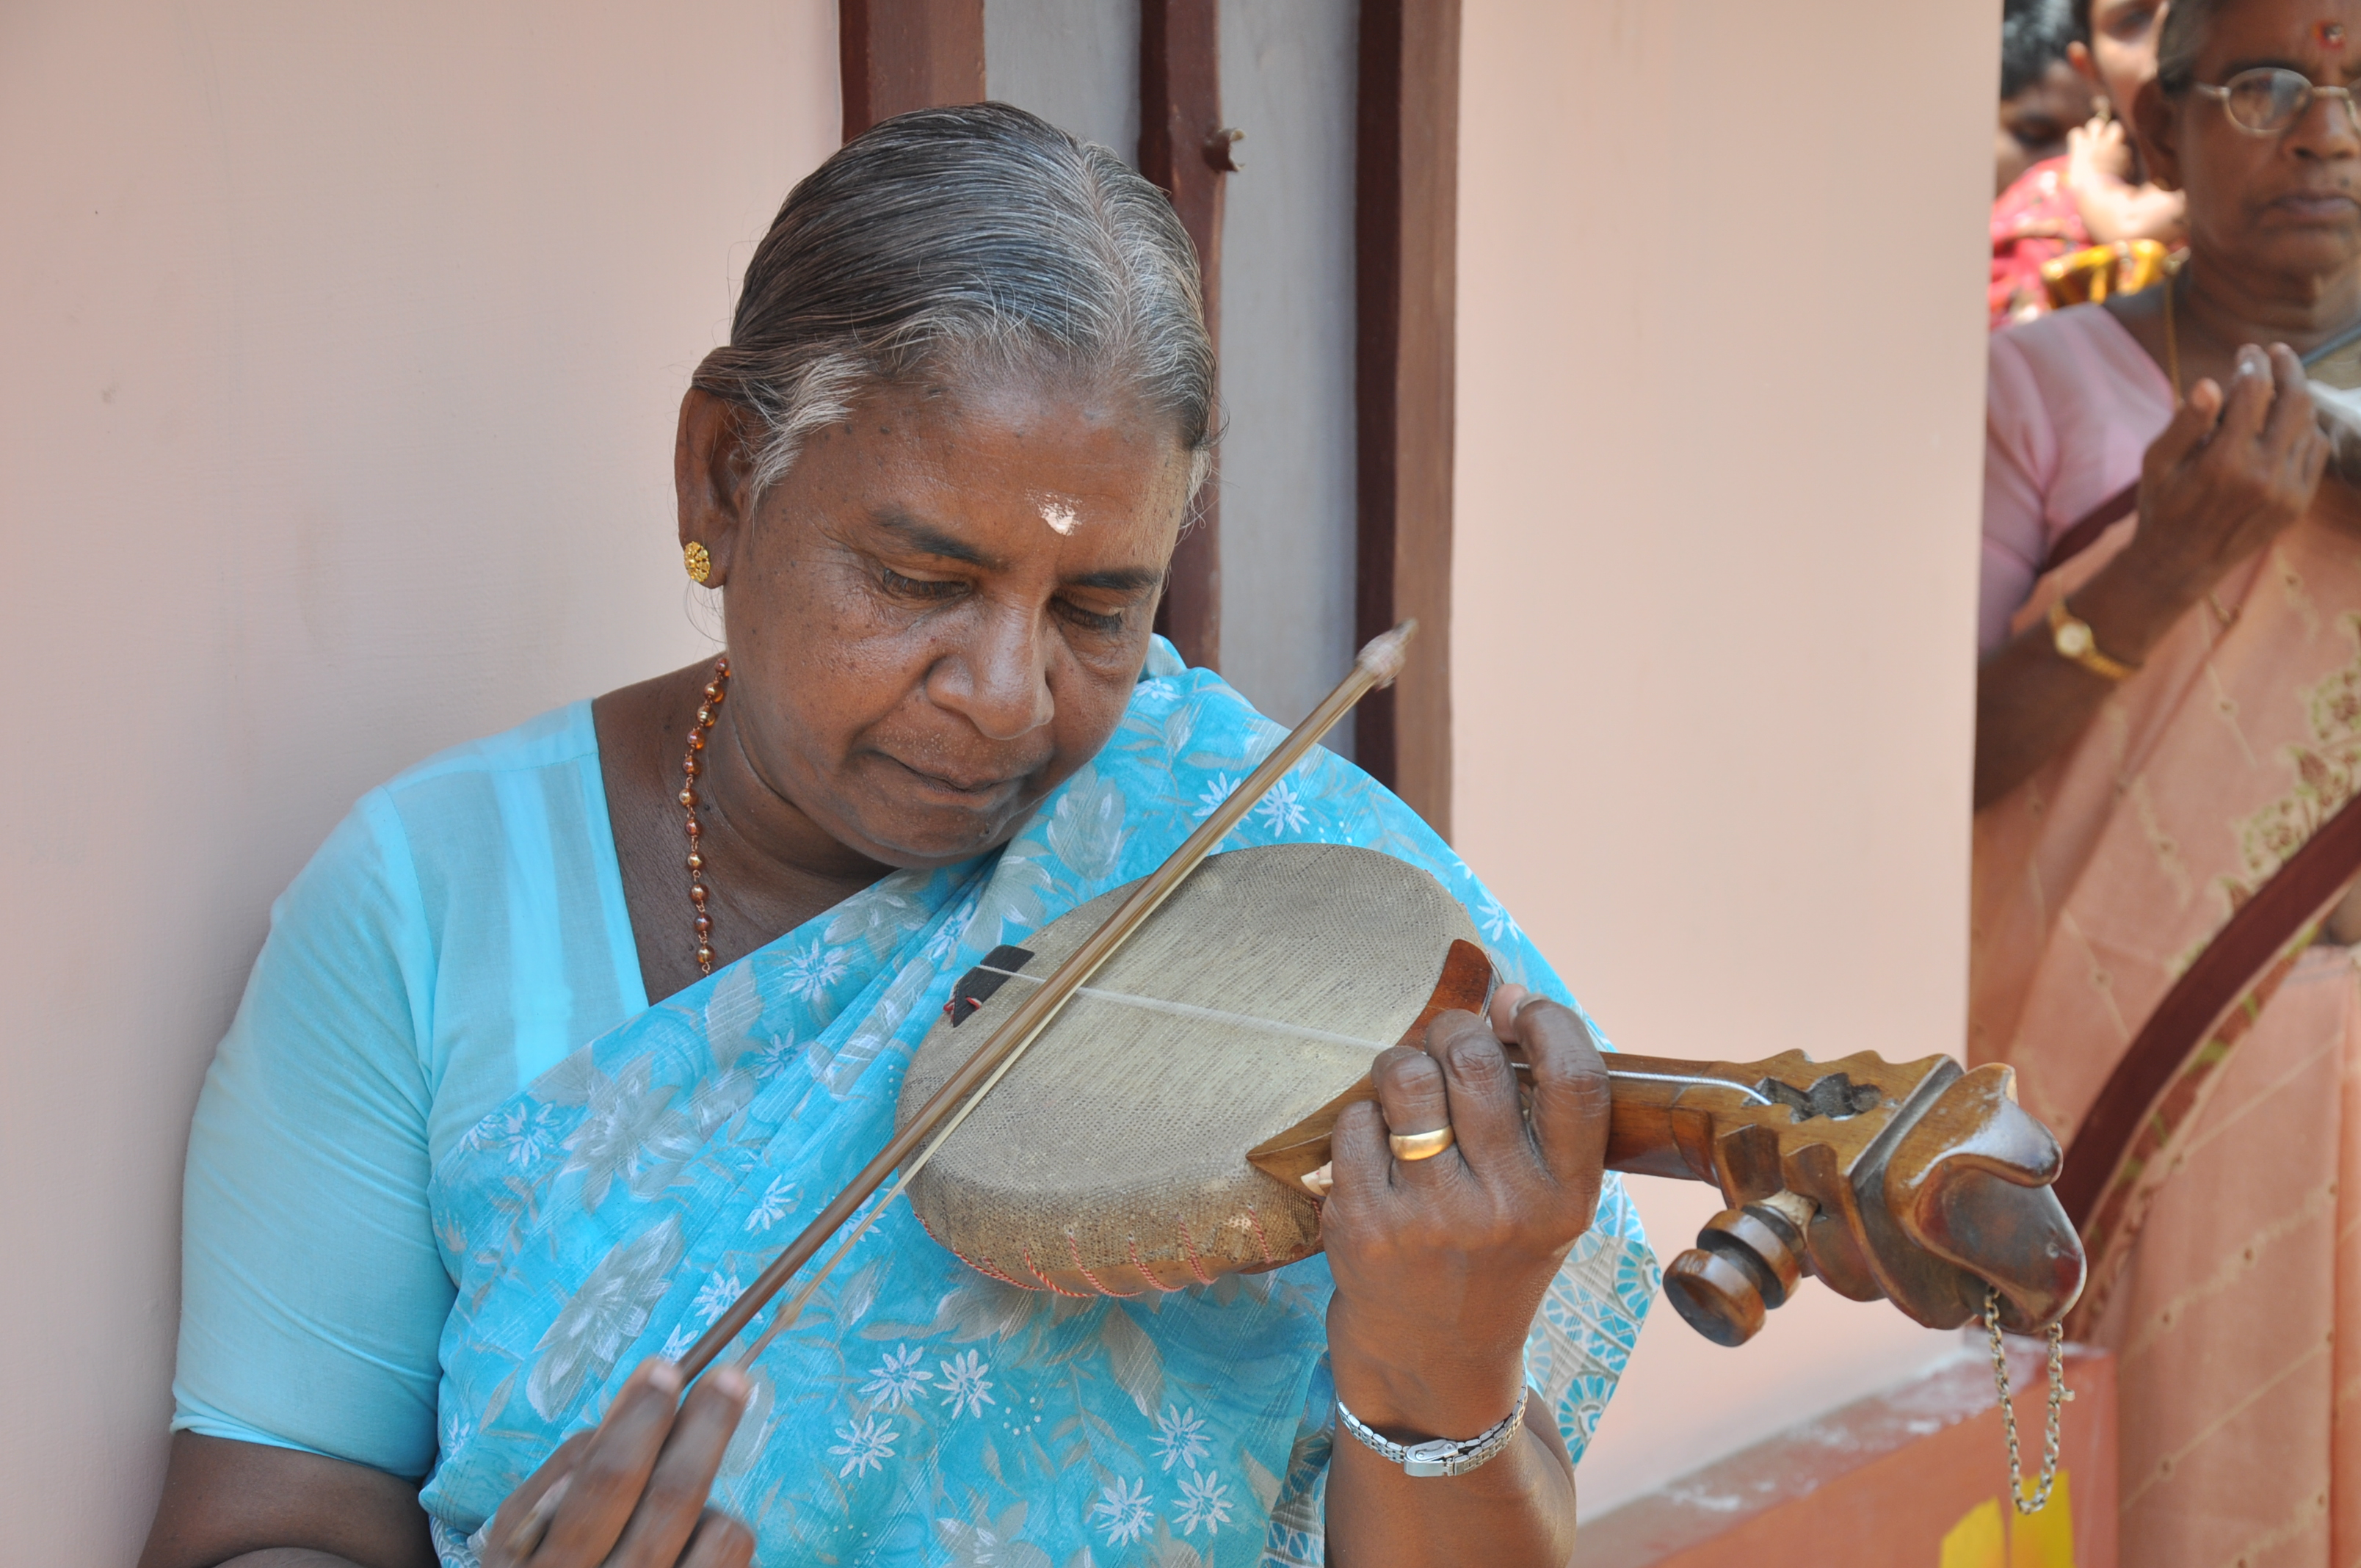 List of Indian musical instruments - Wikipedia